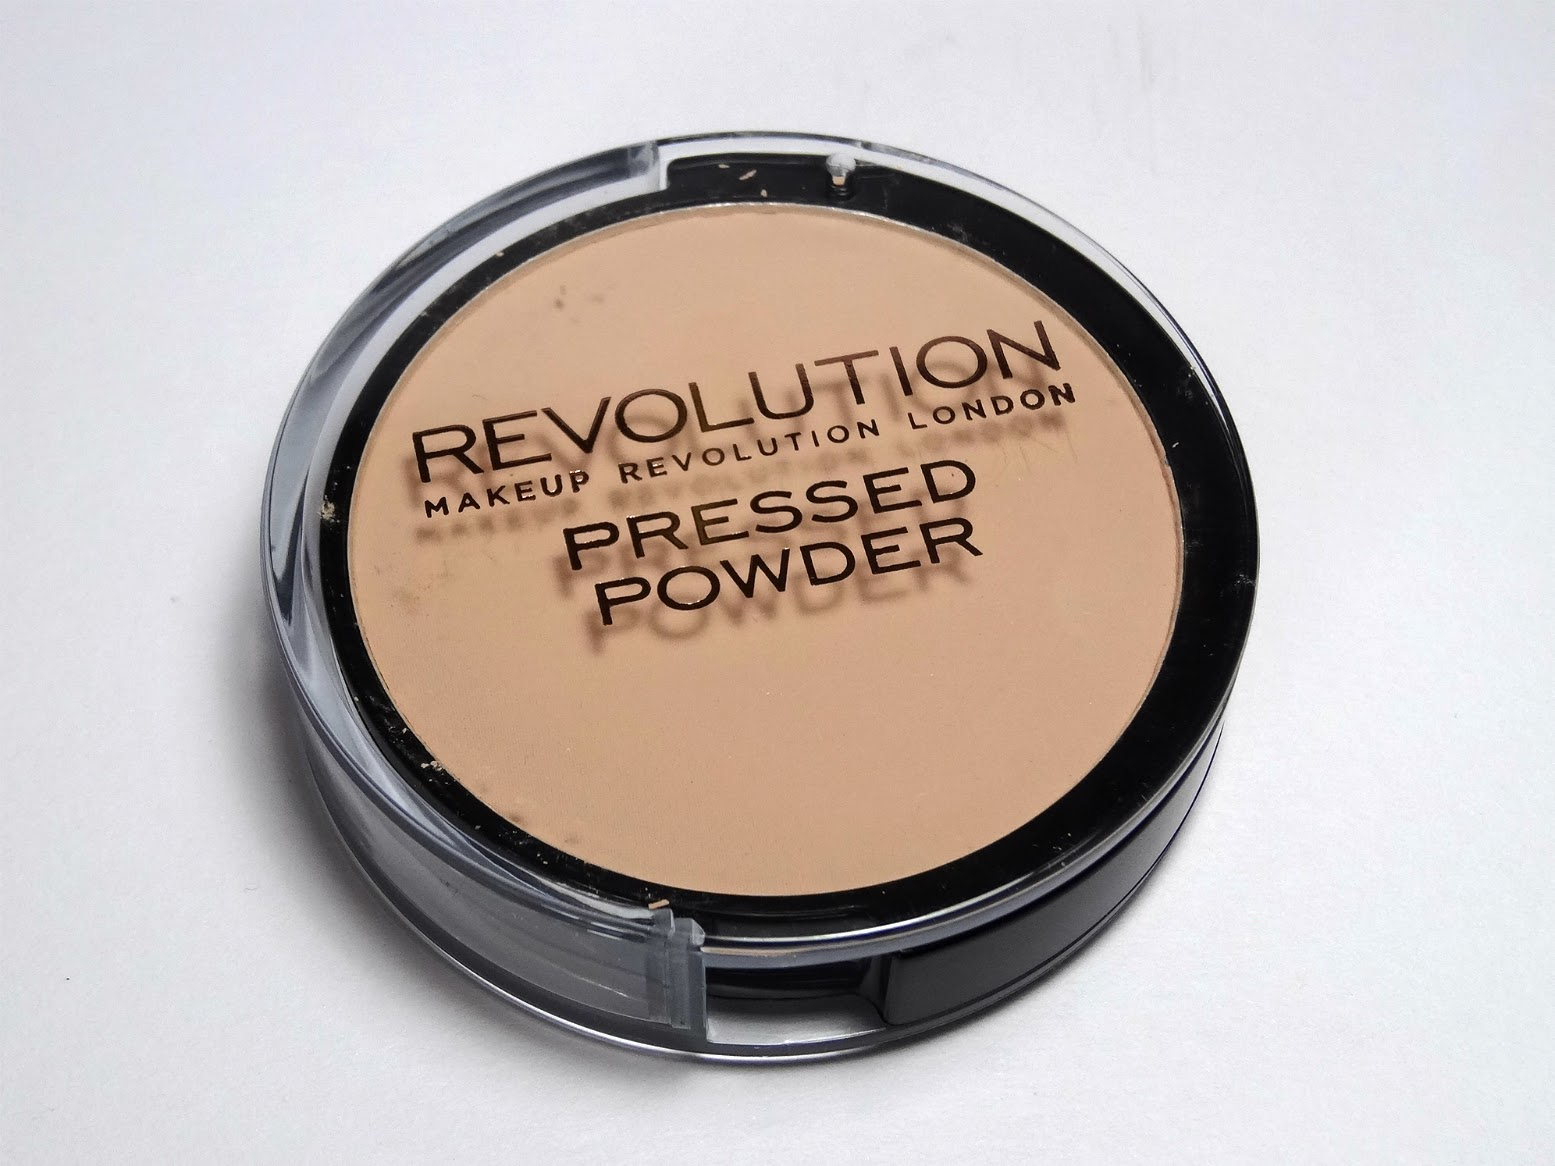 Makeup Forever Hd Foundation Powder